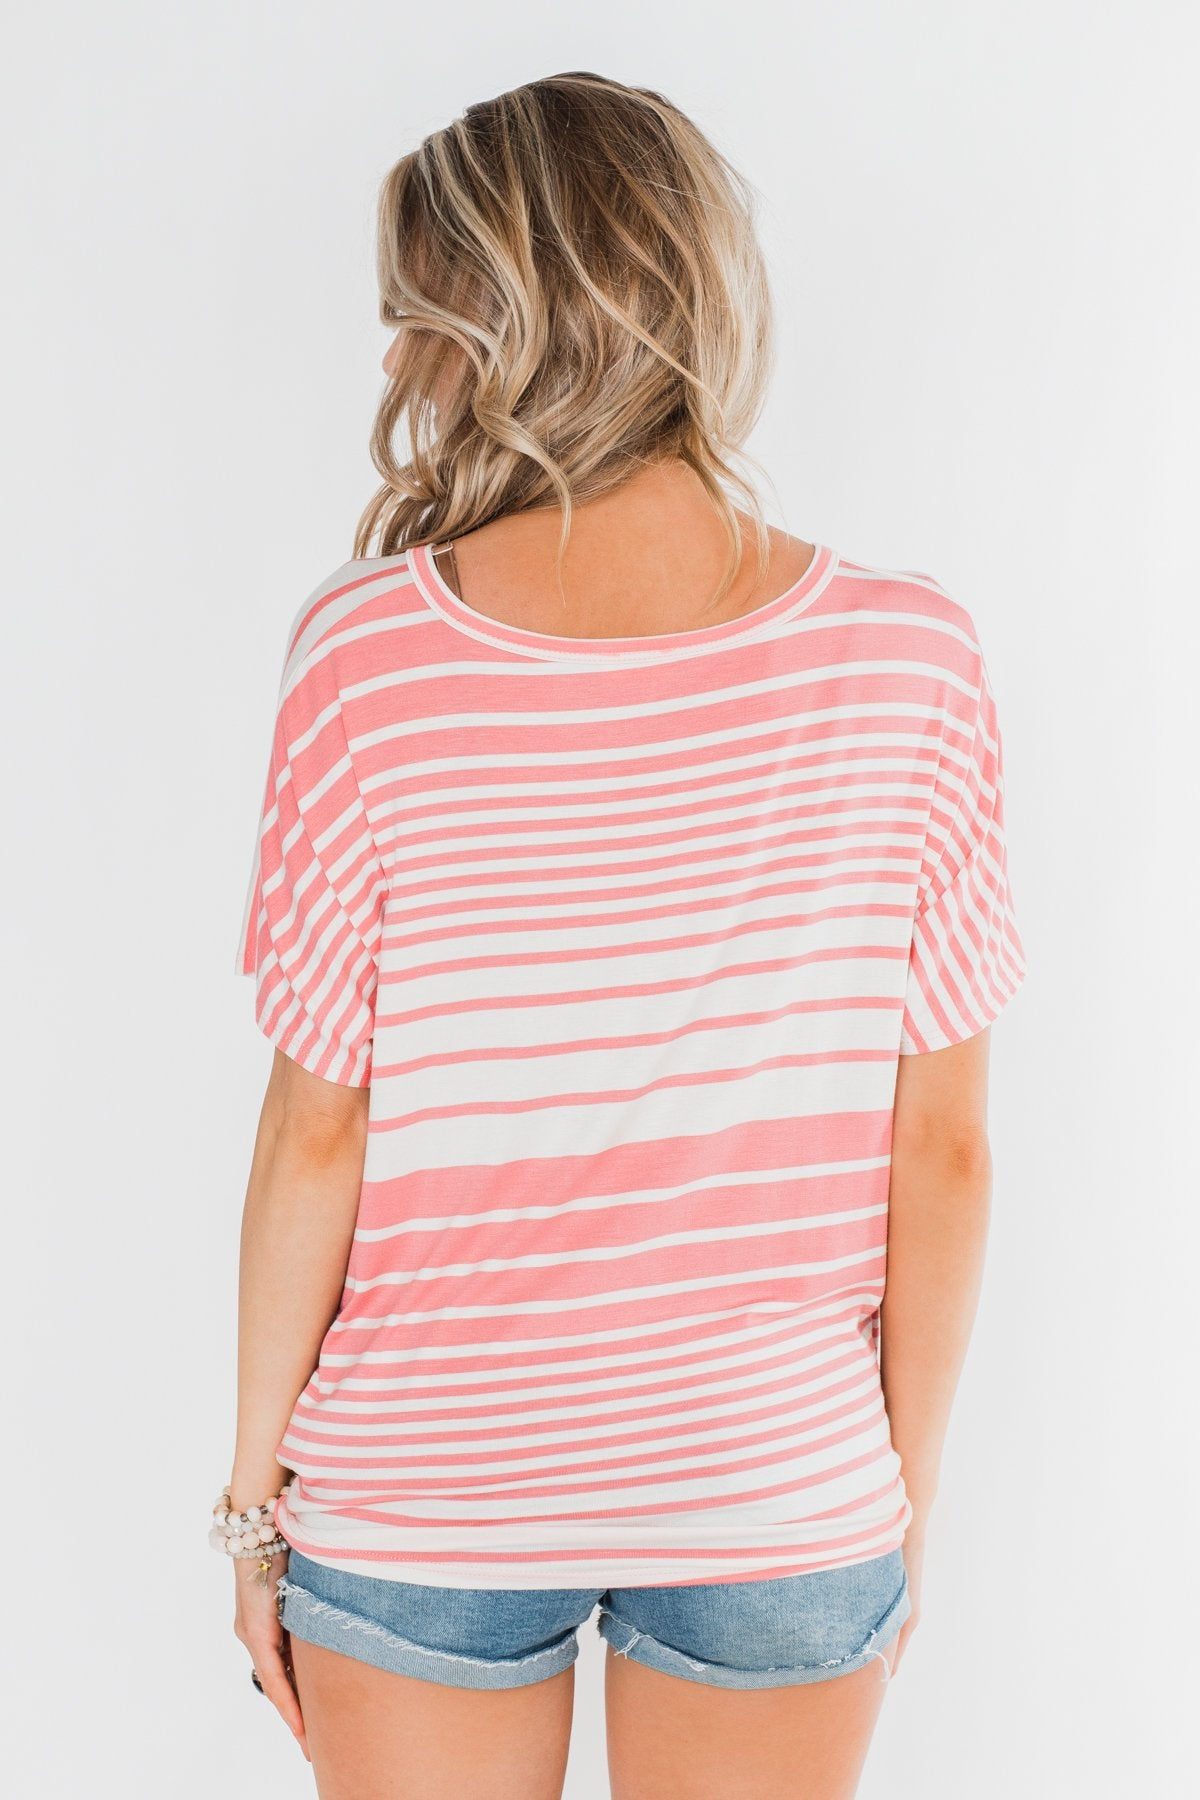 My Best Life Short Sleeve Dolman Top- Pink